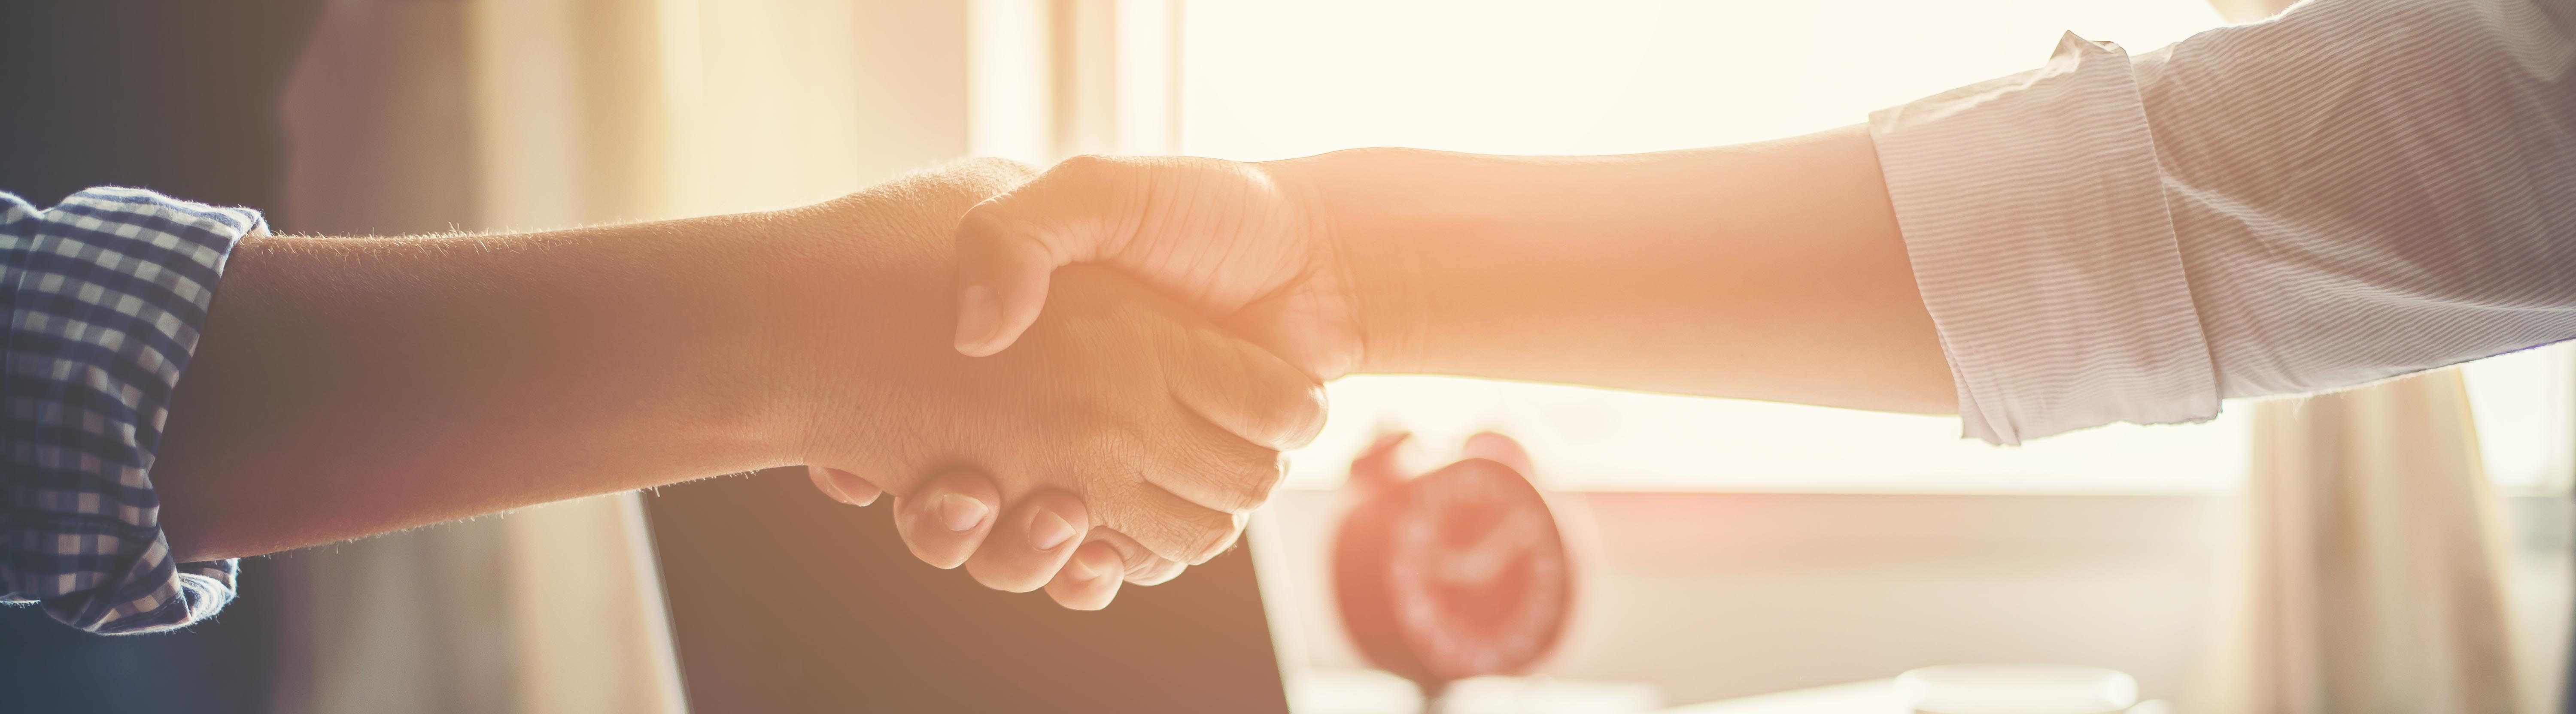 Business People Handshake Greeting Deal at work.